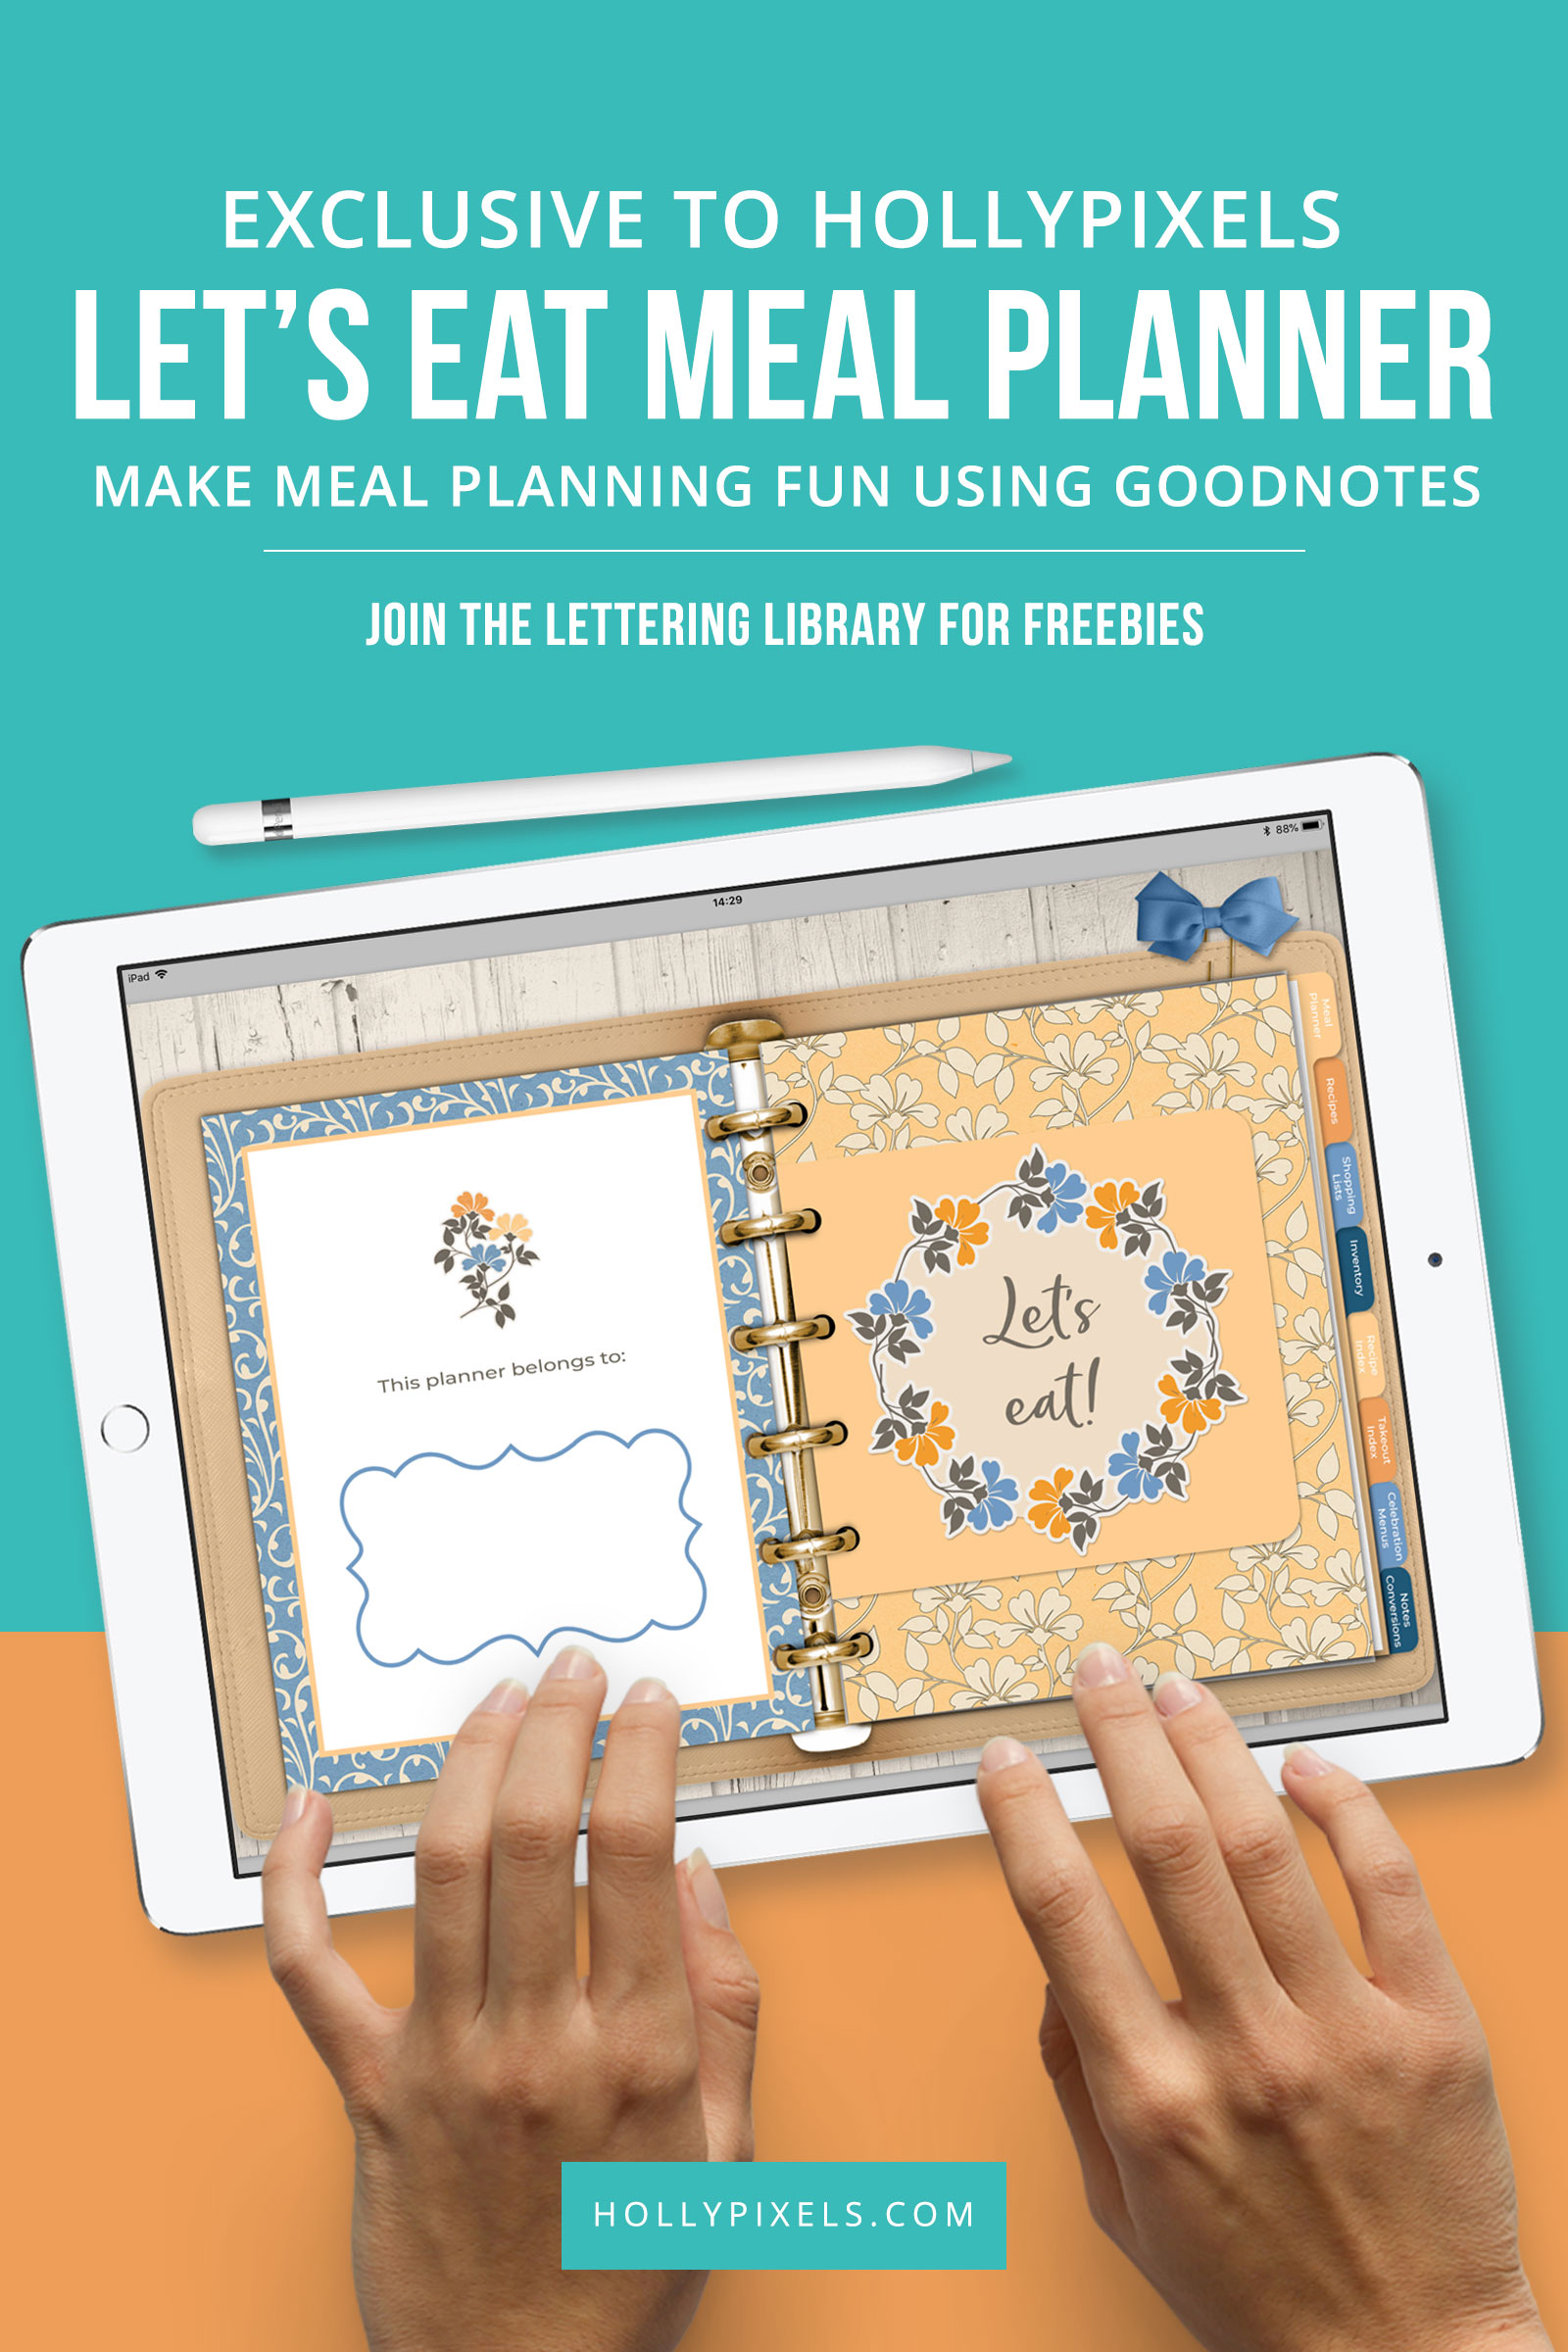 I am so excited that the Let's Eat Meal Planner for the GoodNotes App that Kate George and I have created is available for sale in the shop. It has lots of super useful page layouts and stickers to help you plan and organize your meals and favorite recipes.